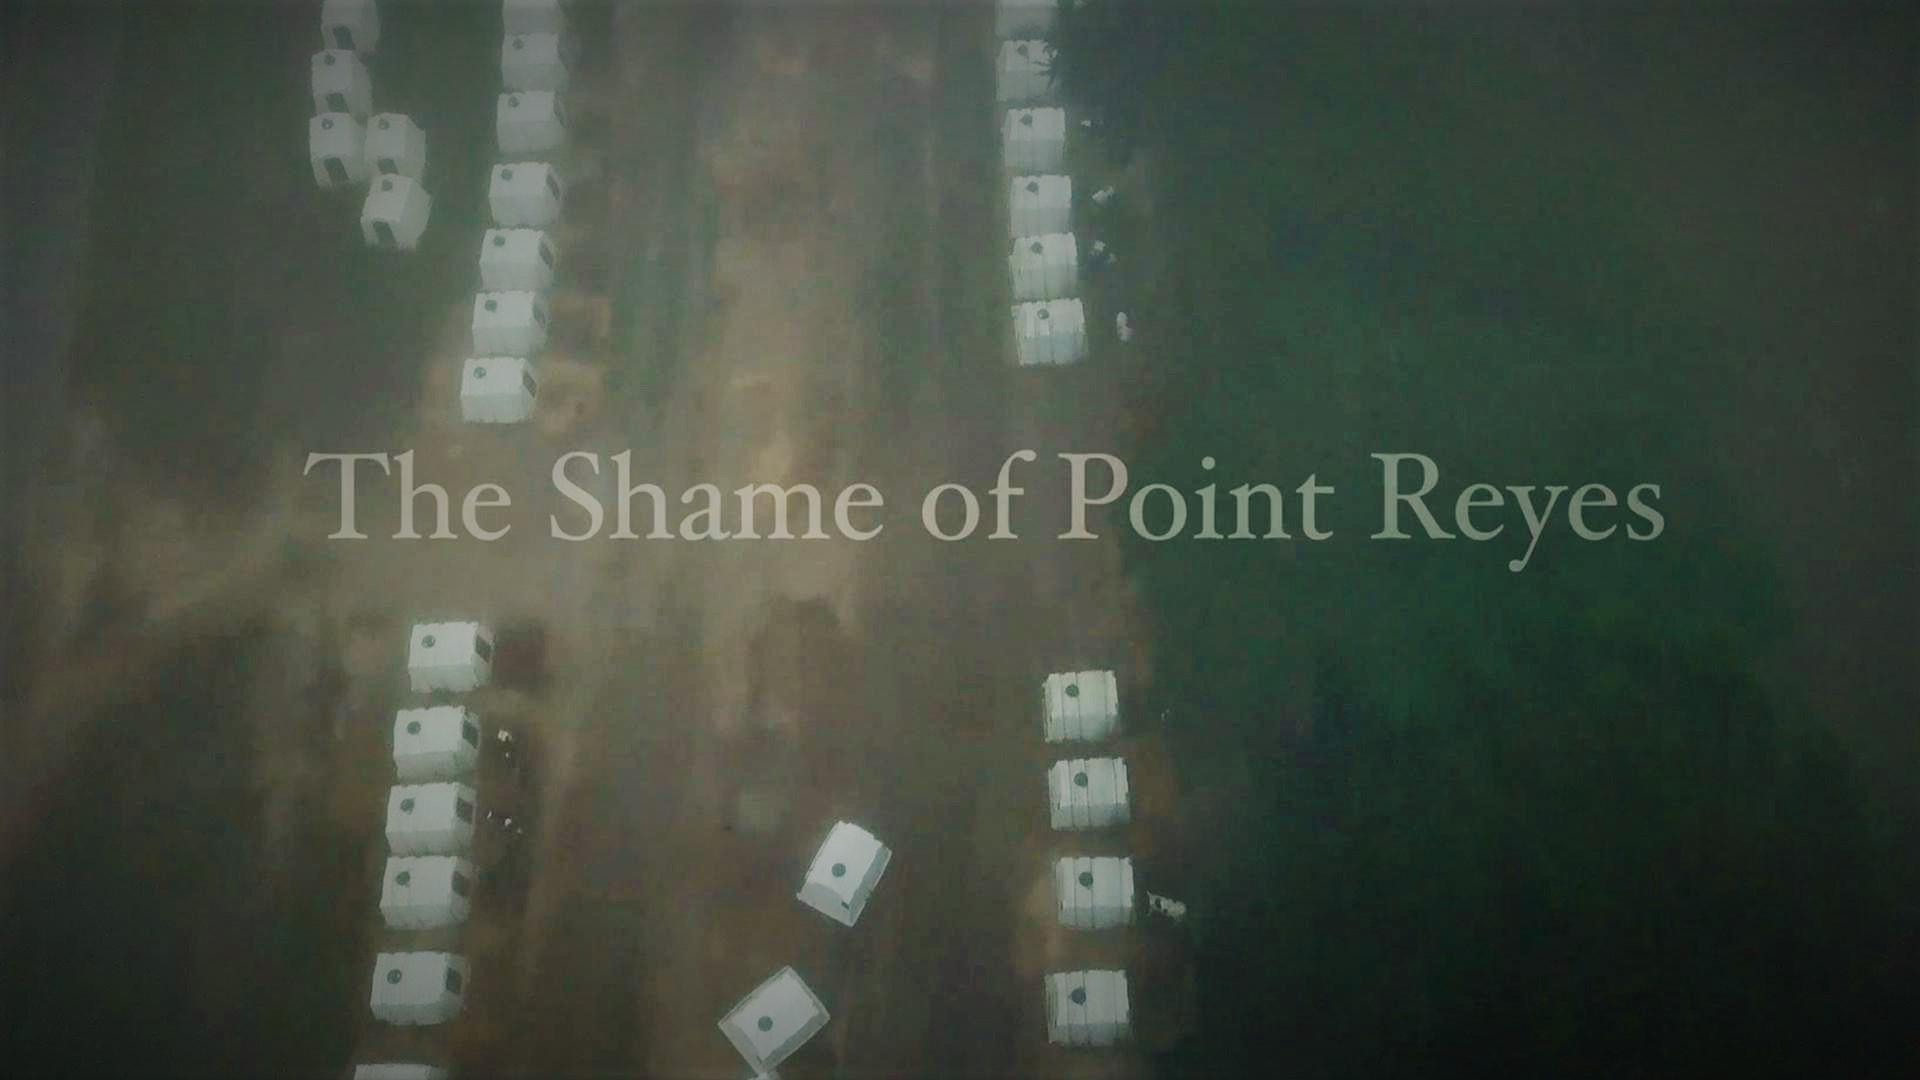 The Shame of Point Reyes